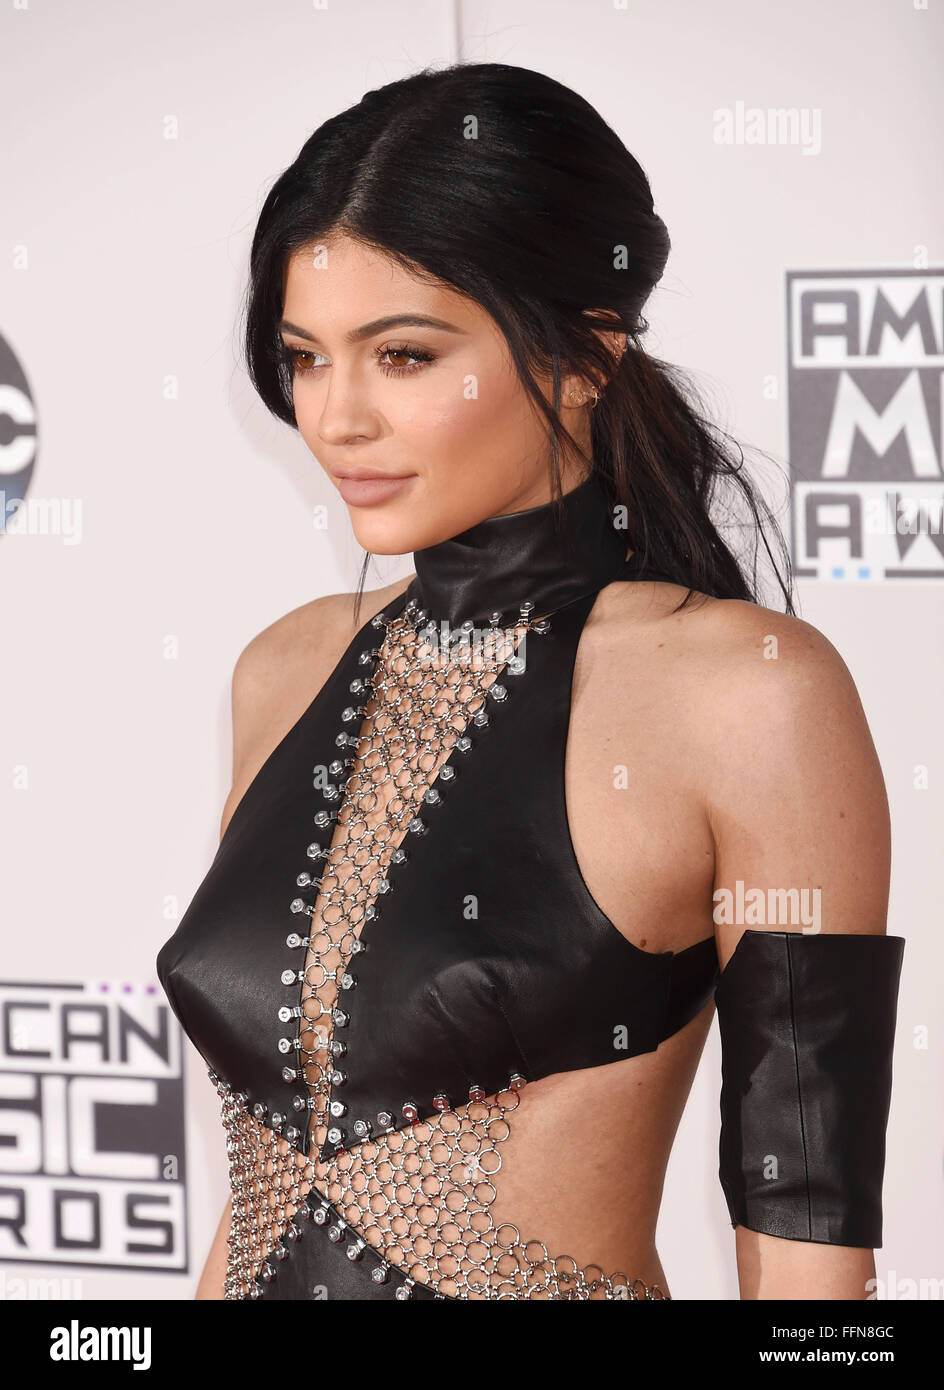 TV personality Kylie Jenner arrives at the 2015 American Music Awards at Microsoft Theater on November 22, 2015 - Stock Image